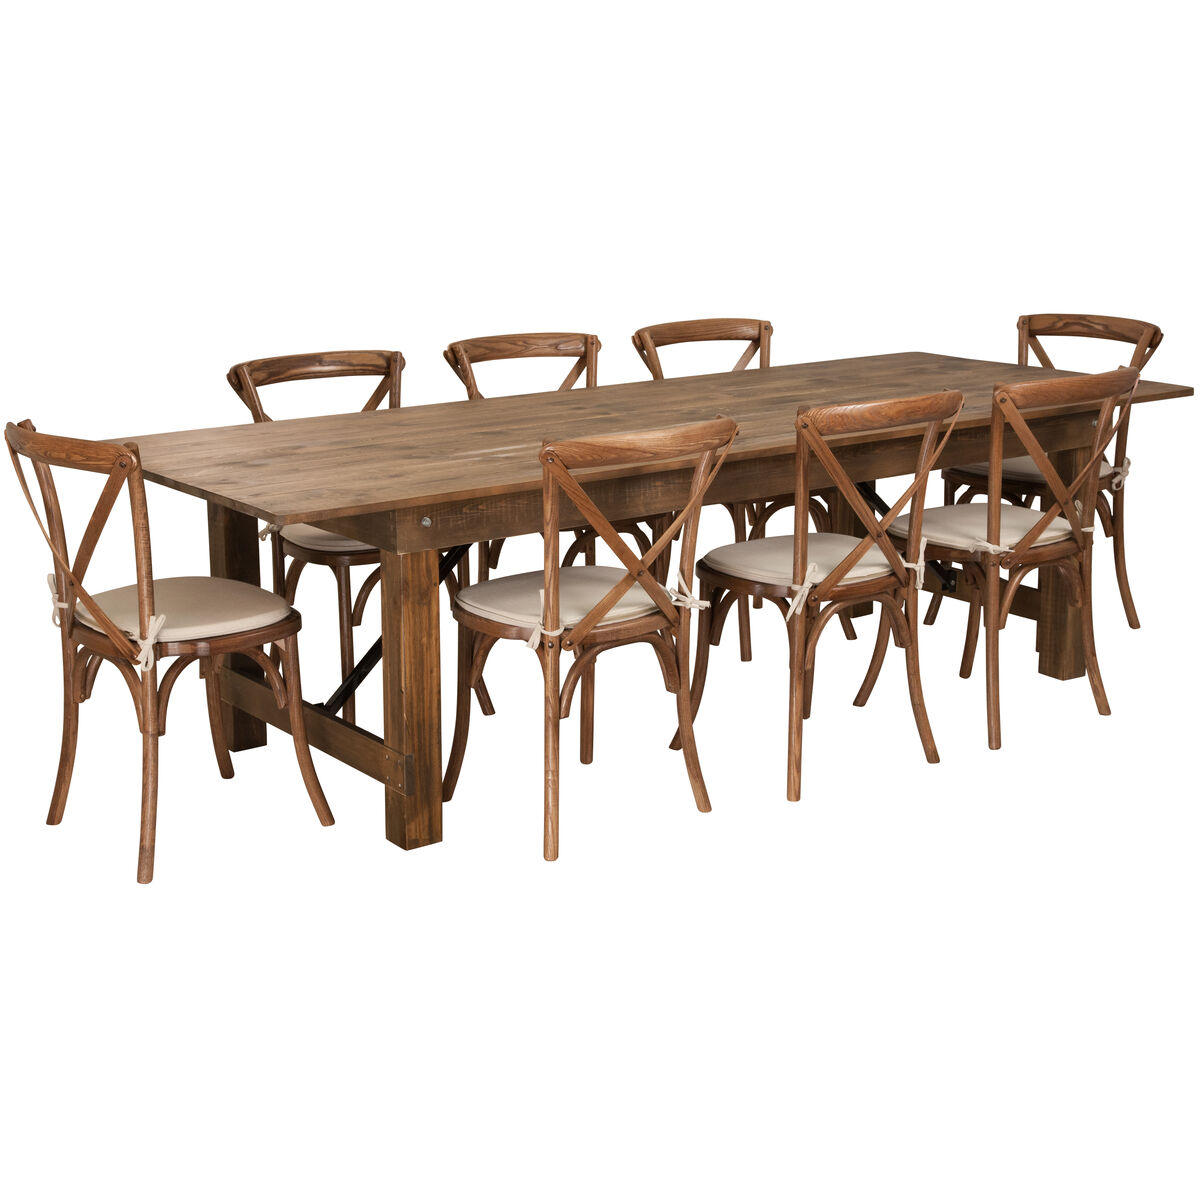 ... Our HERCULES Series 9' x 40'' Antique Rustic Folding Farm Table Set with - 9'x40